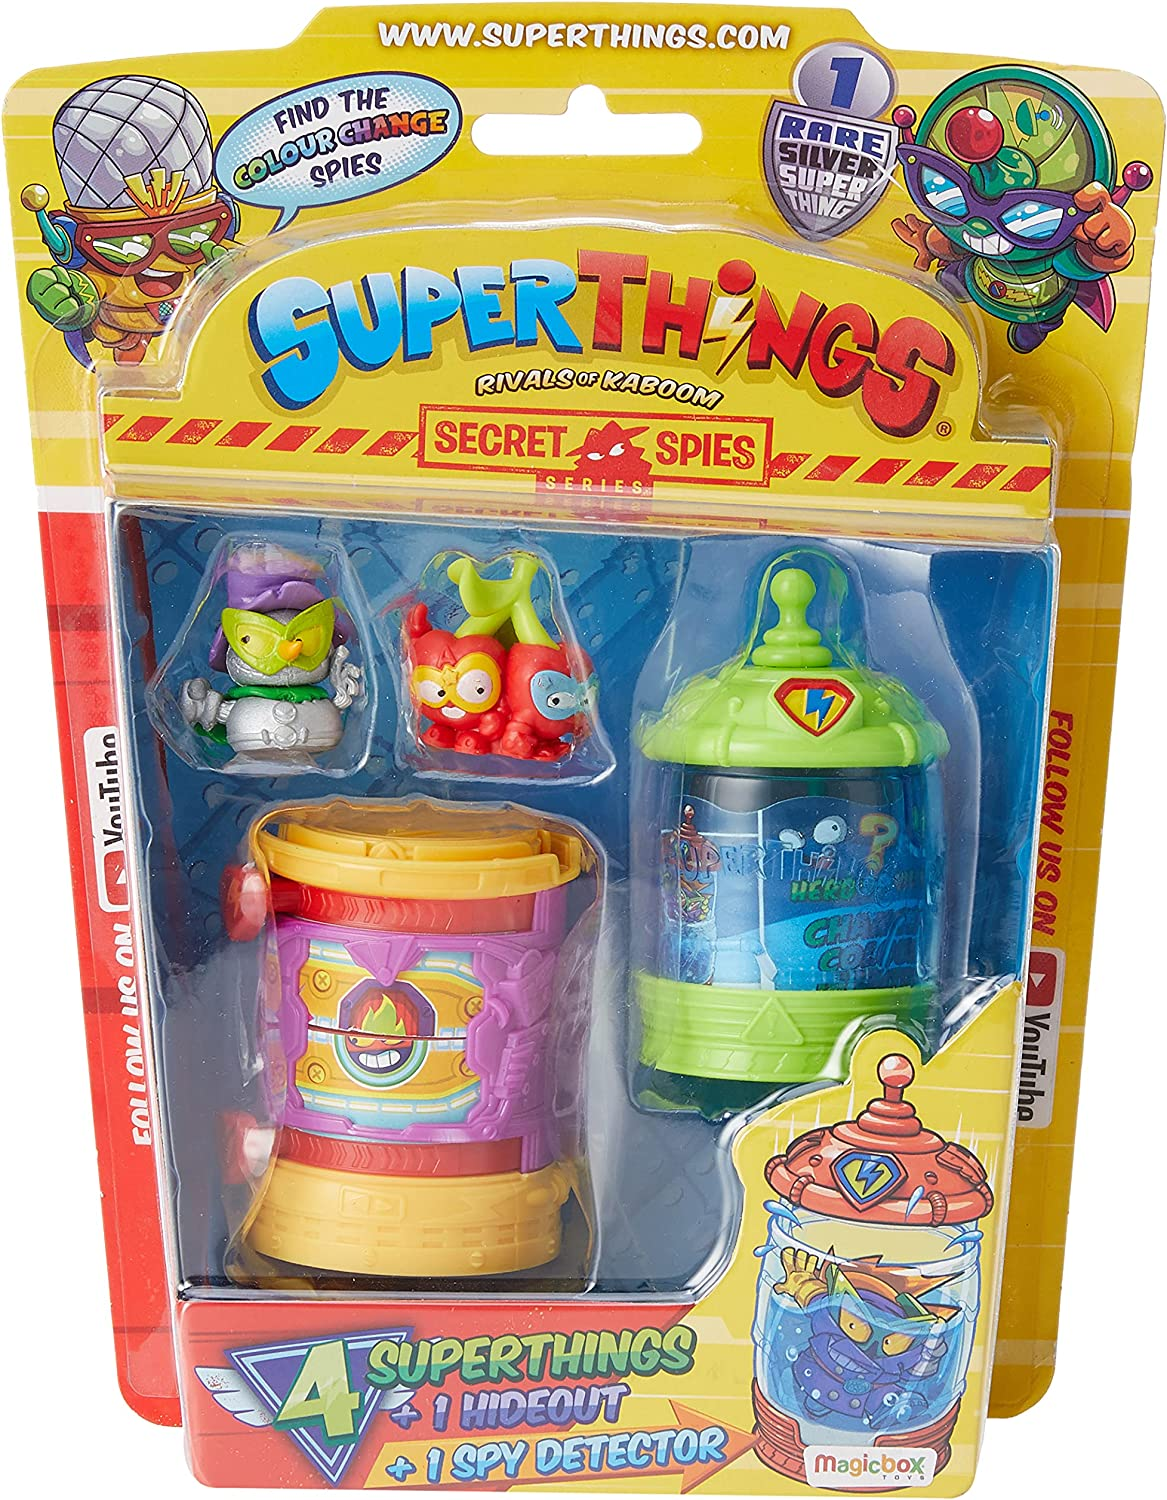 SuperThings Rivals Kaboom - Secret Tulsa Mall PST6B416IN00 Blister Spies Time sale